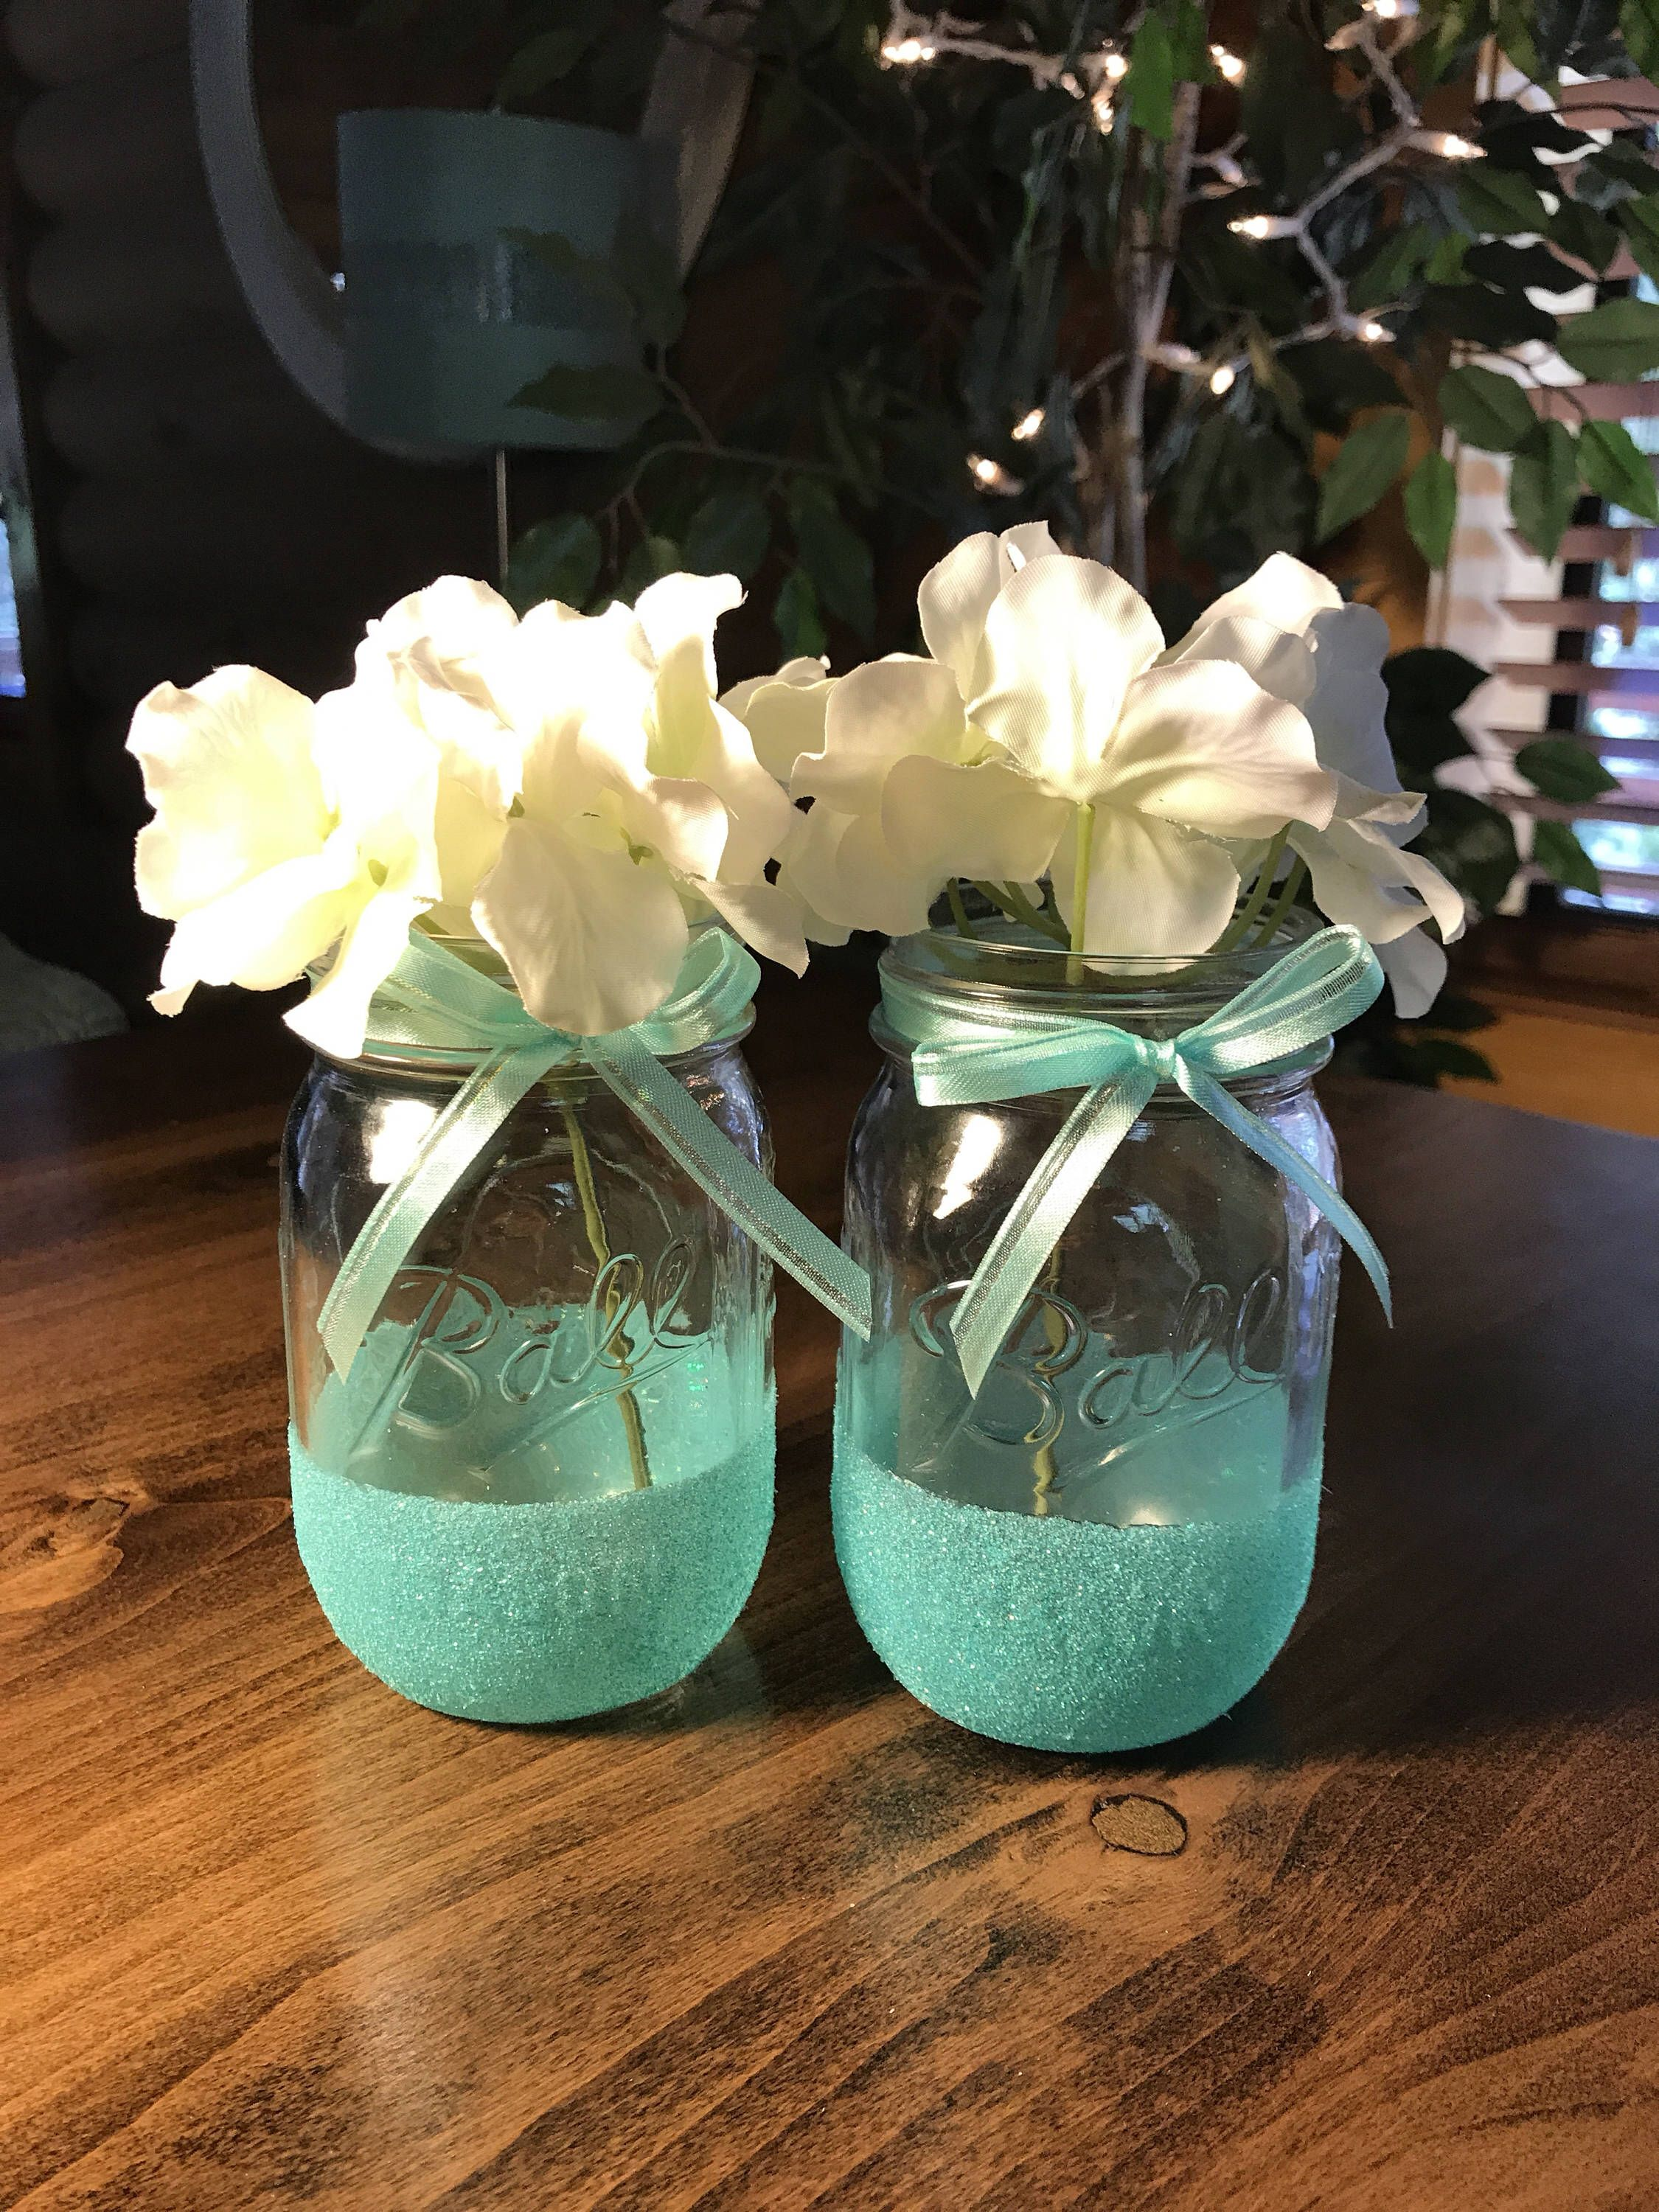 Glitter Mason Jars Set Of 2 Wedding Decor Mason Jar Decor Home Decor Rustic Mason Jar Decor Country Wedding Glitter Mason Jars Mason Glitter Mason Jars Wedding Centerpieces Mason Jars Mason